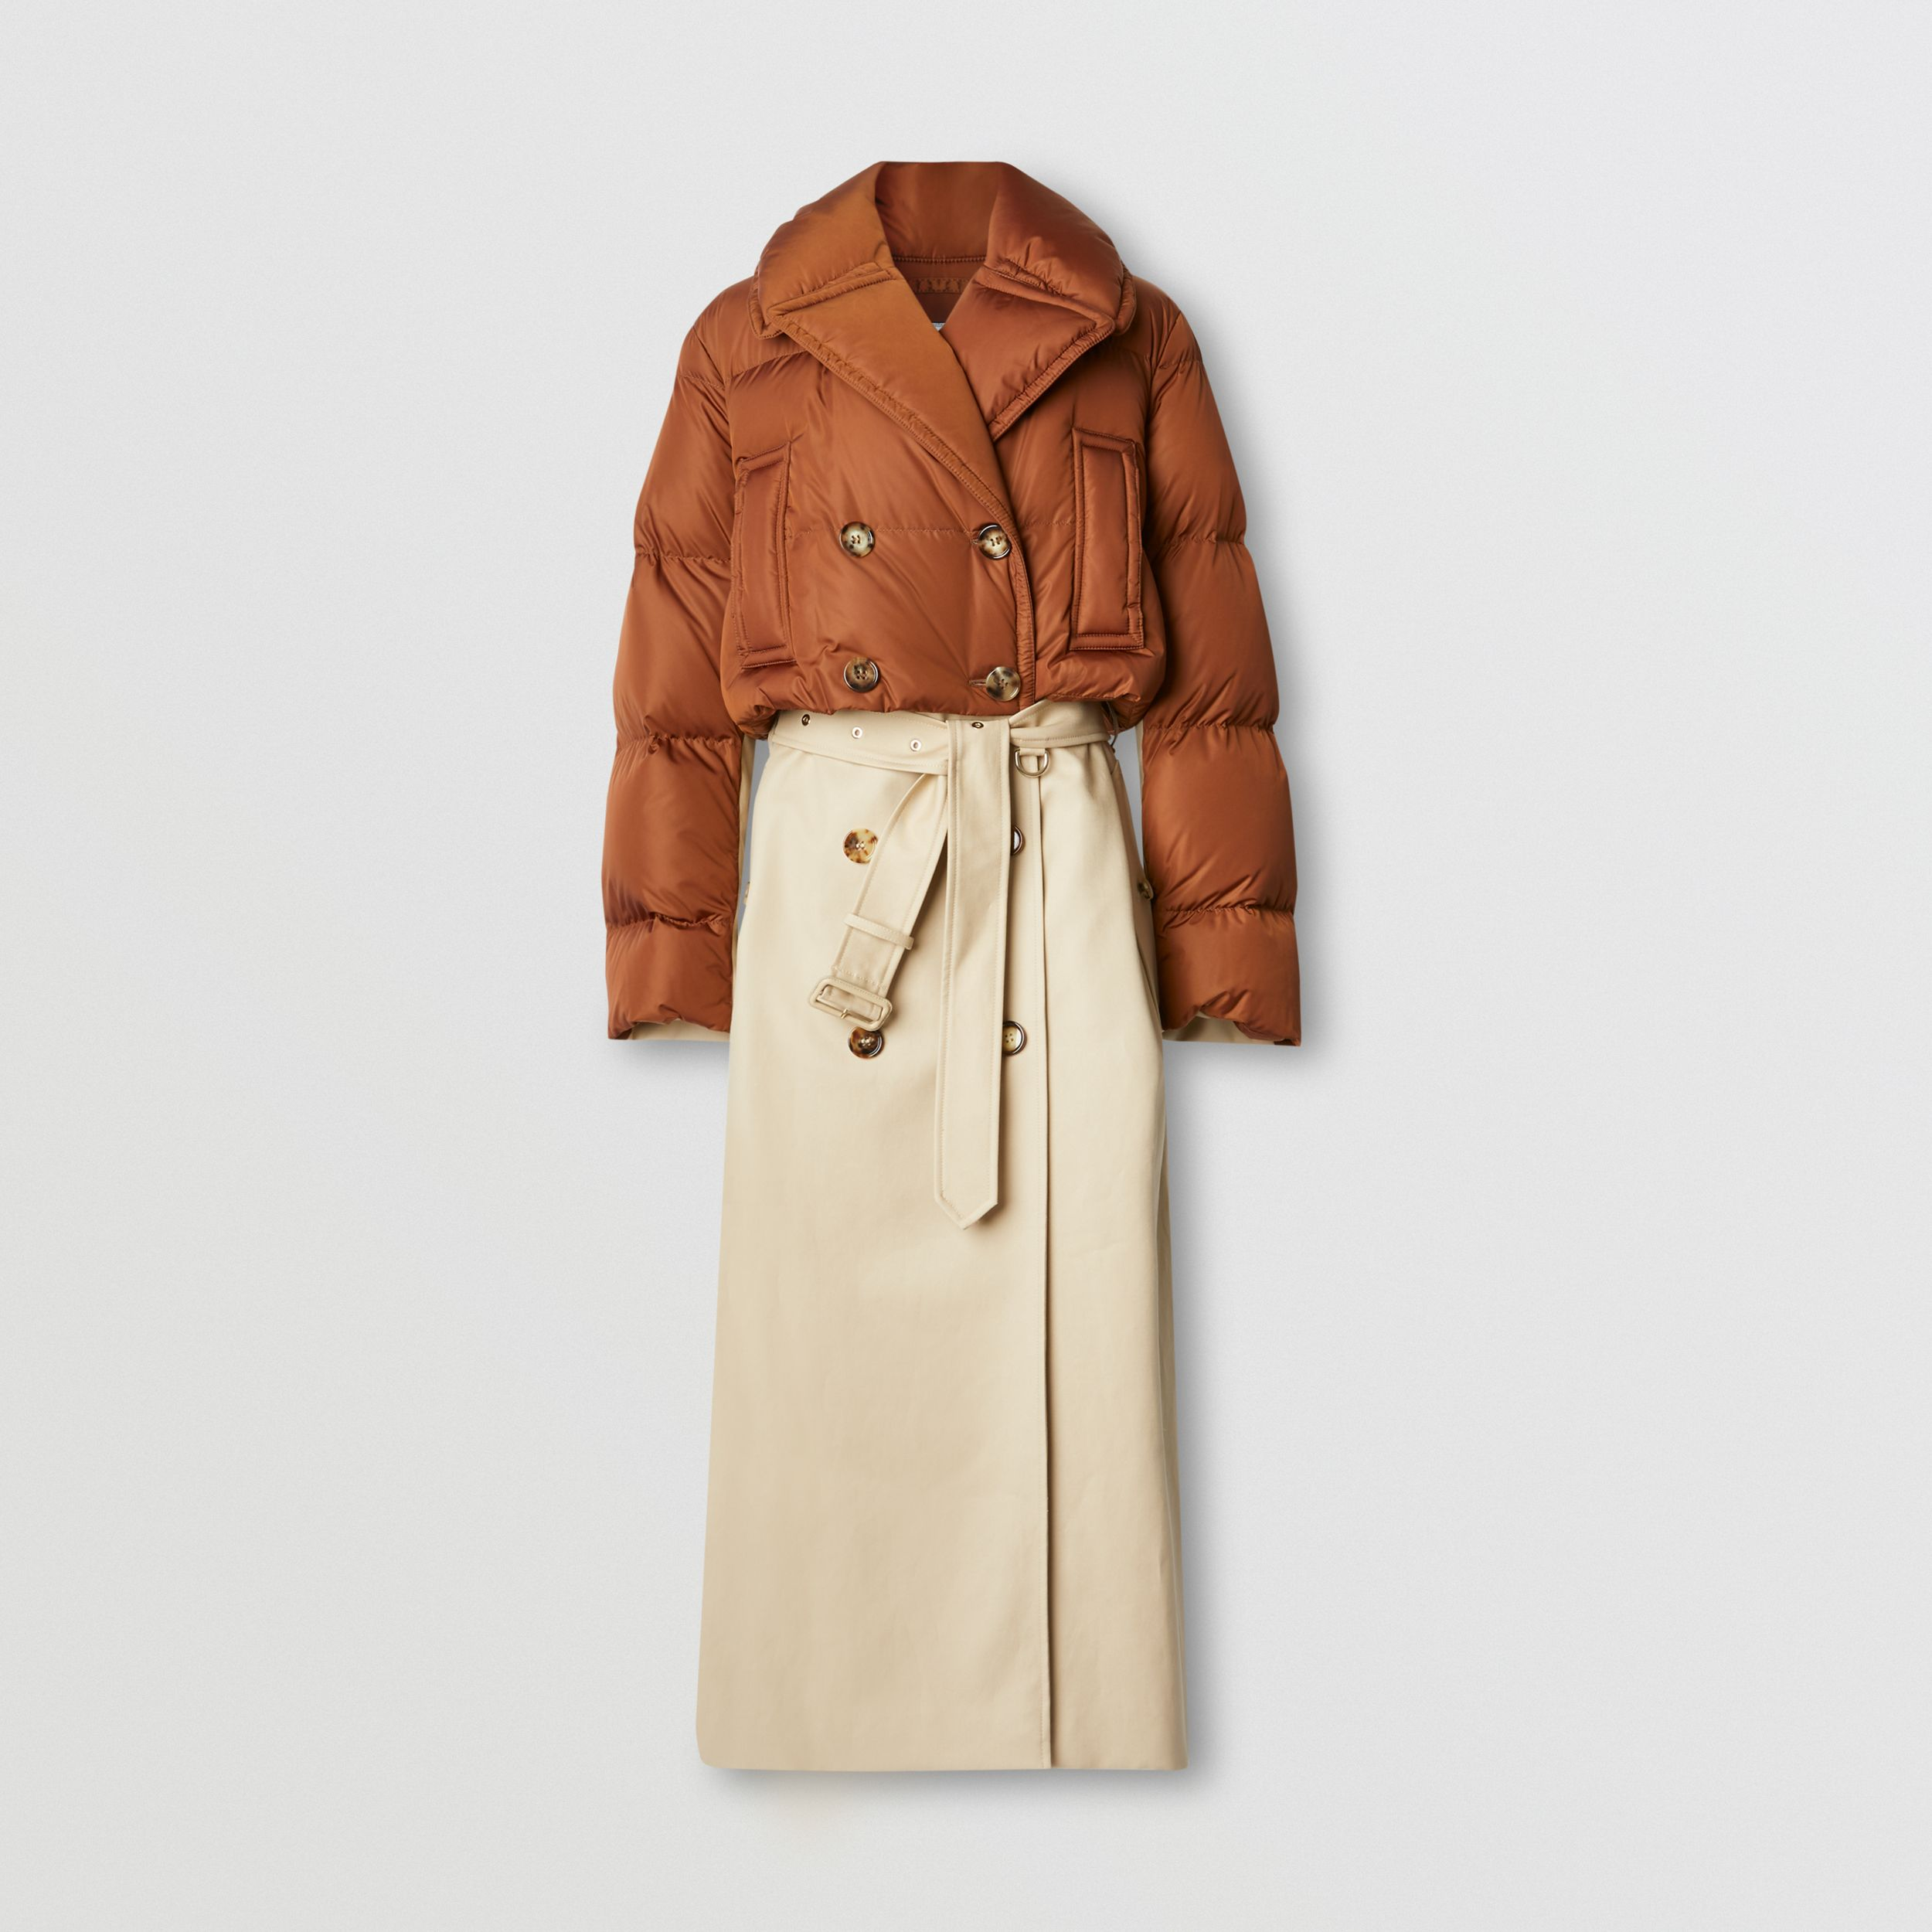 Puffer Jacket Detail Cotton Gabardine Trench Coat in Warm Brown - Women | Burberry Australia - 4